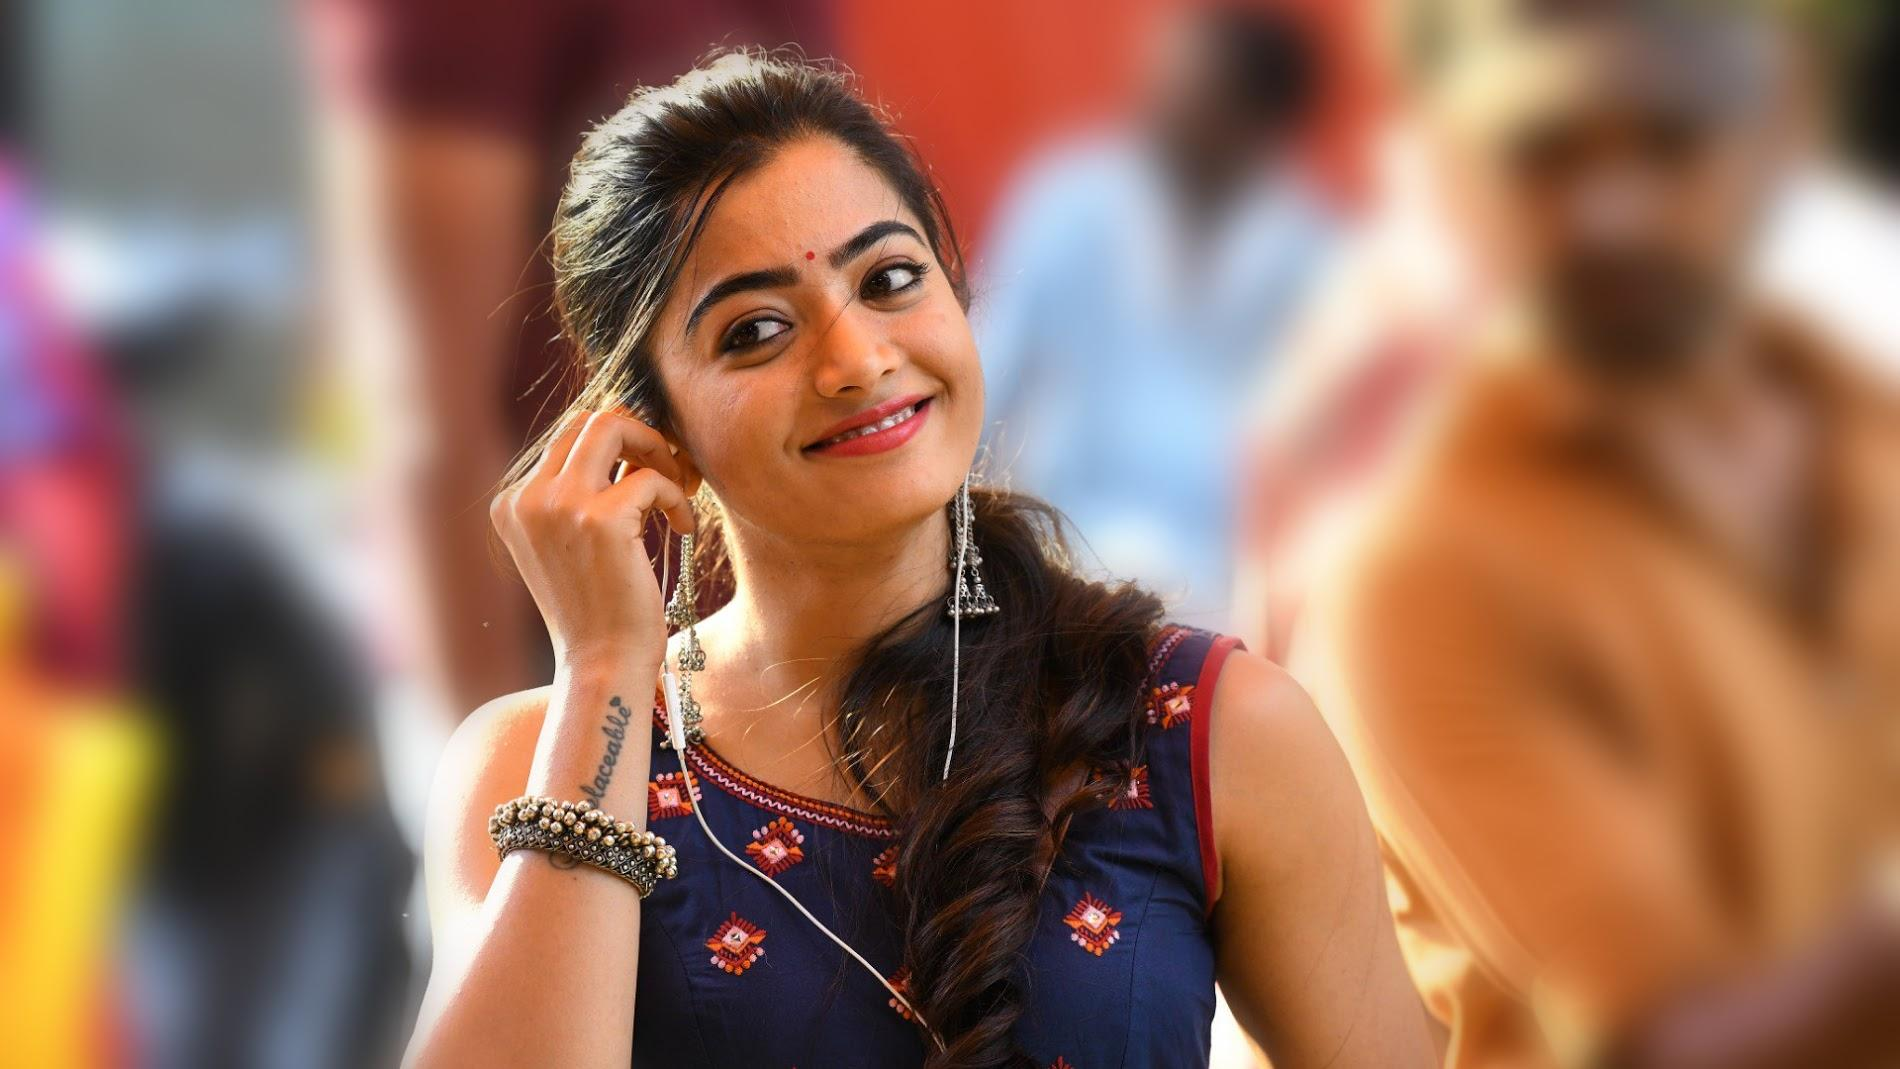 Top 12 Wallpapers of Rashmika Mandanna